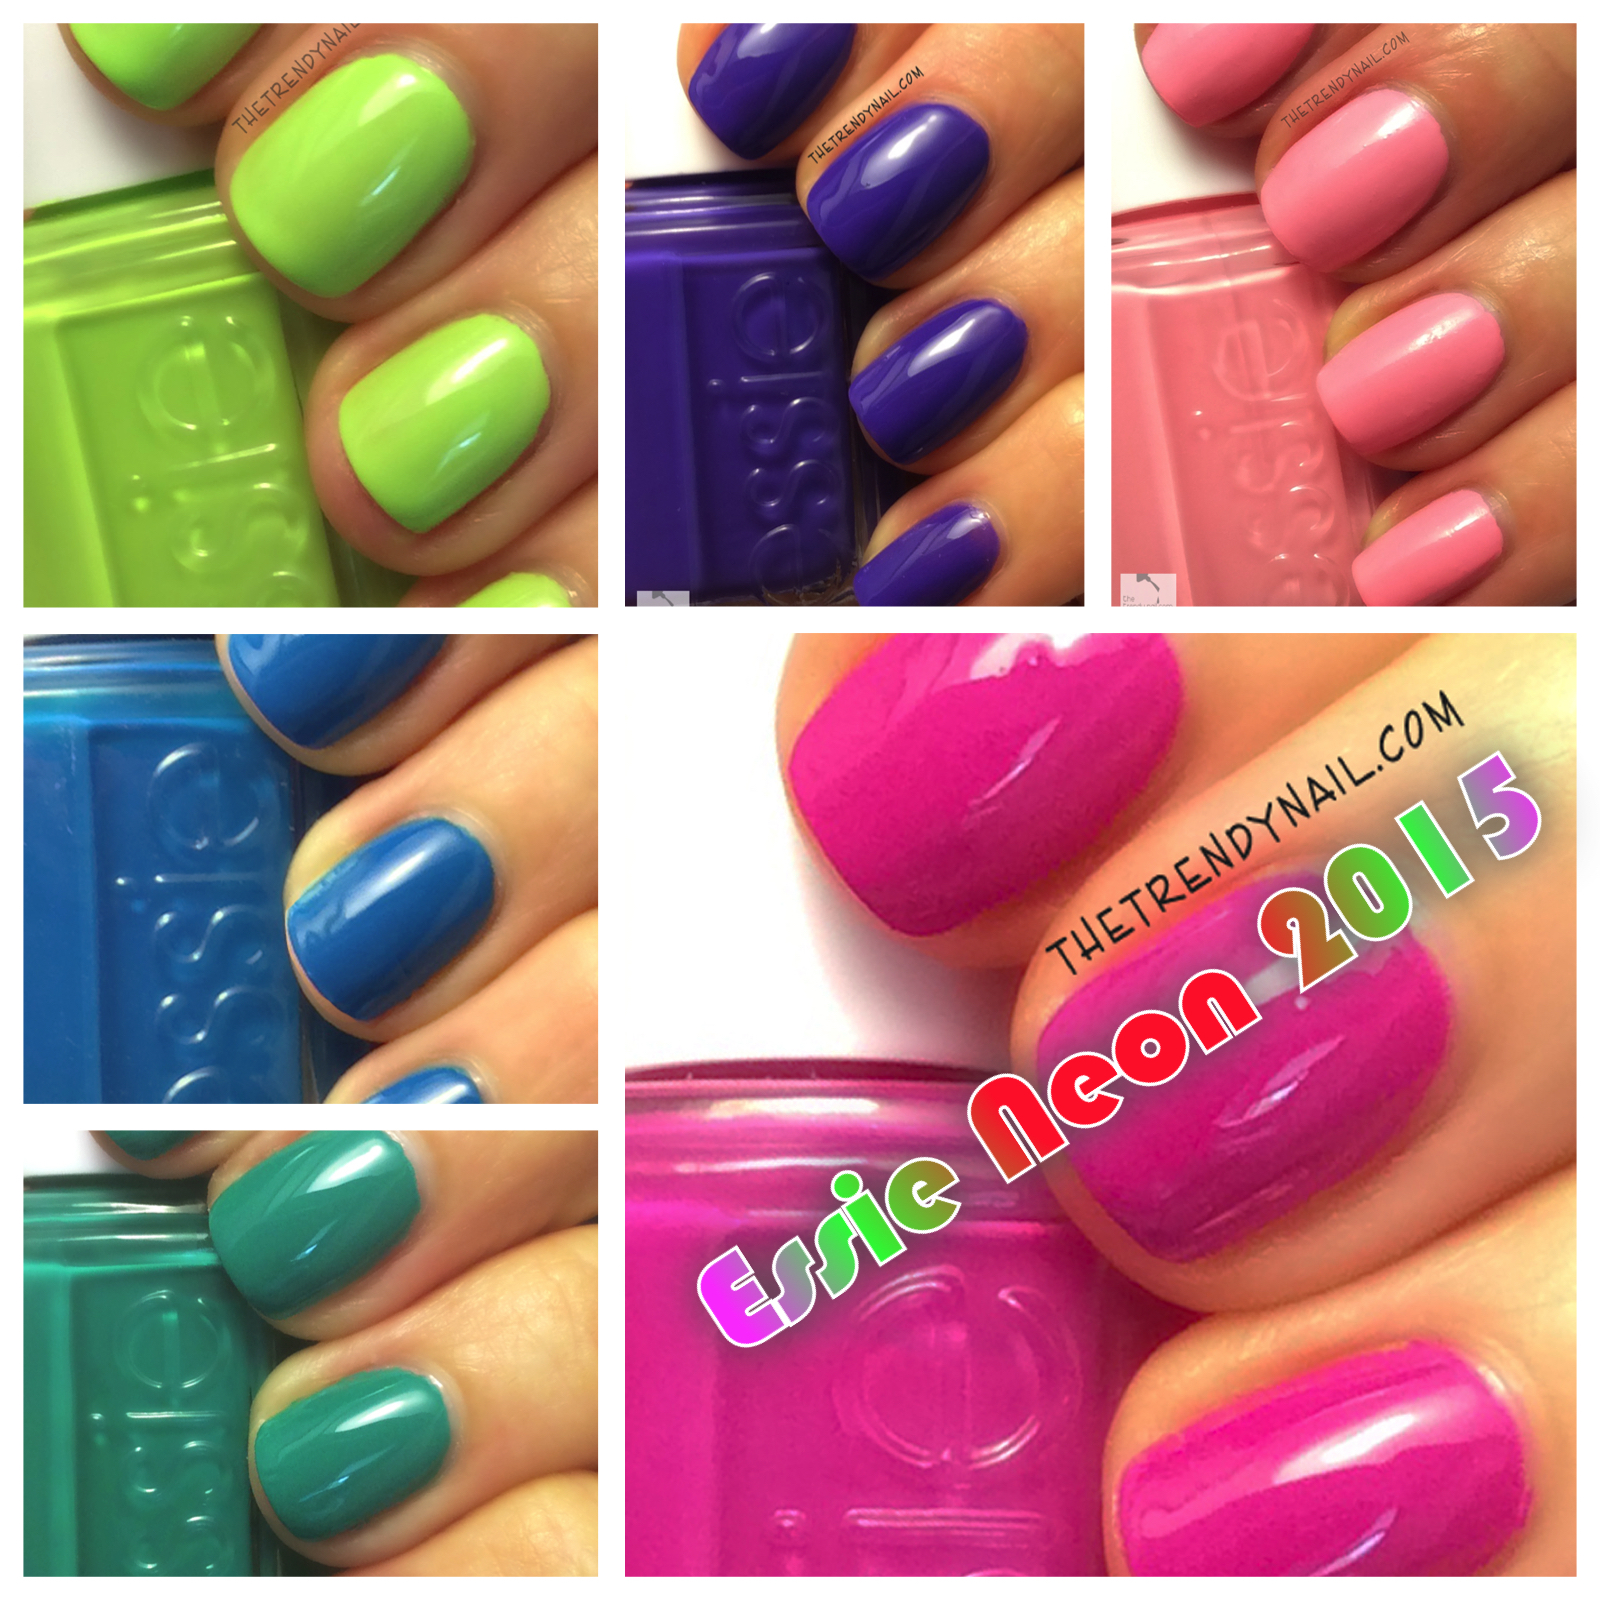 Essie Neon 2015 Collection